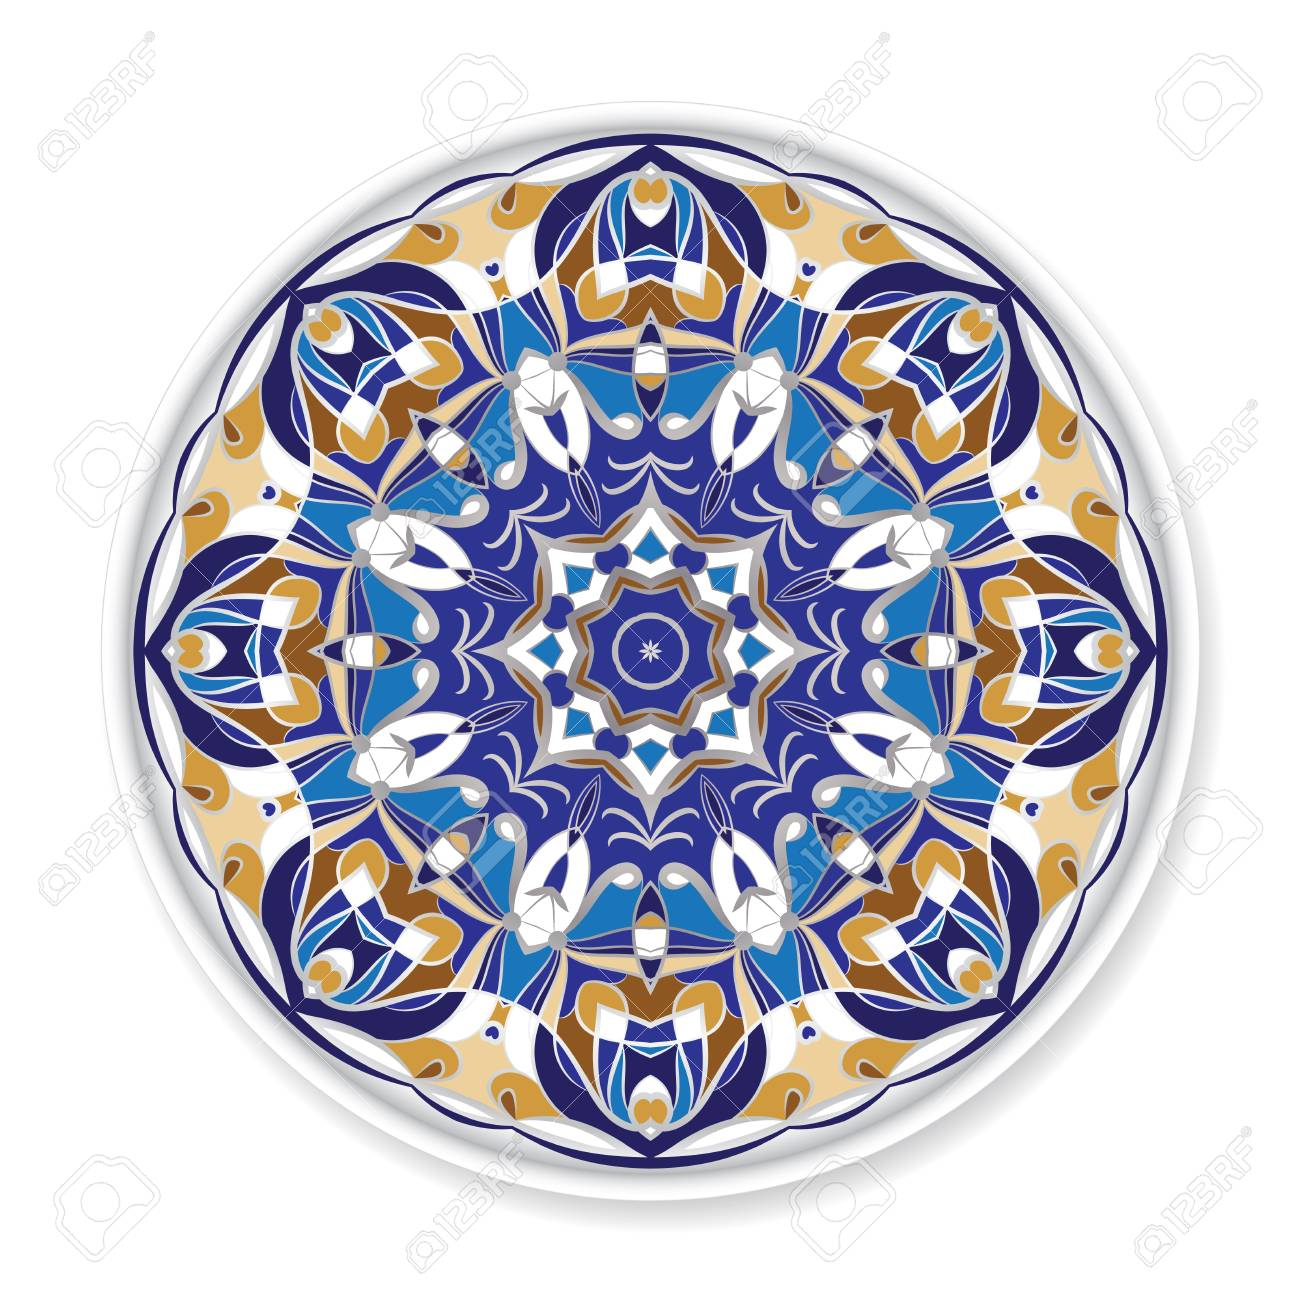 Decorative plate with round ornament in ethnic style. Home decor..